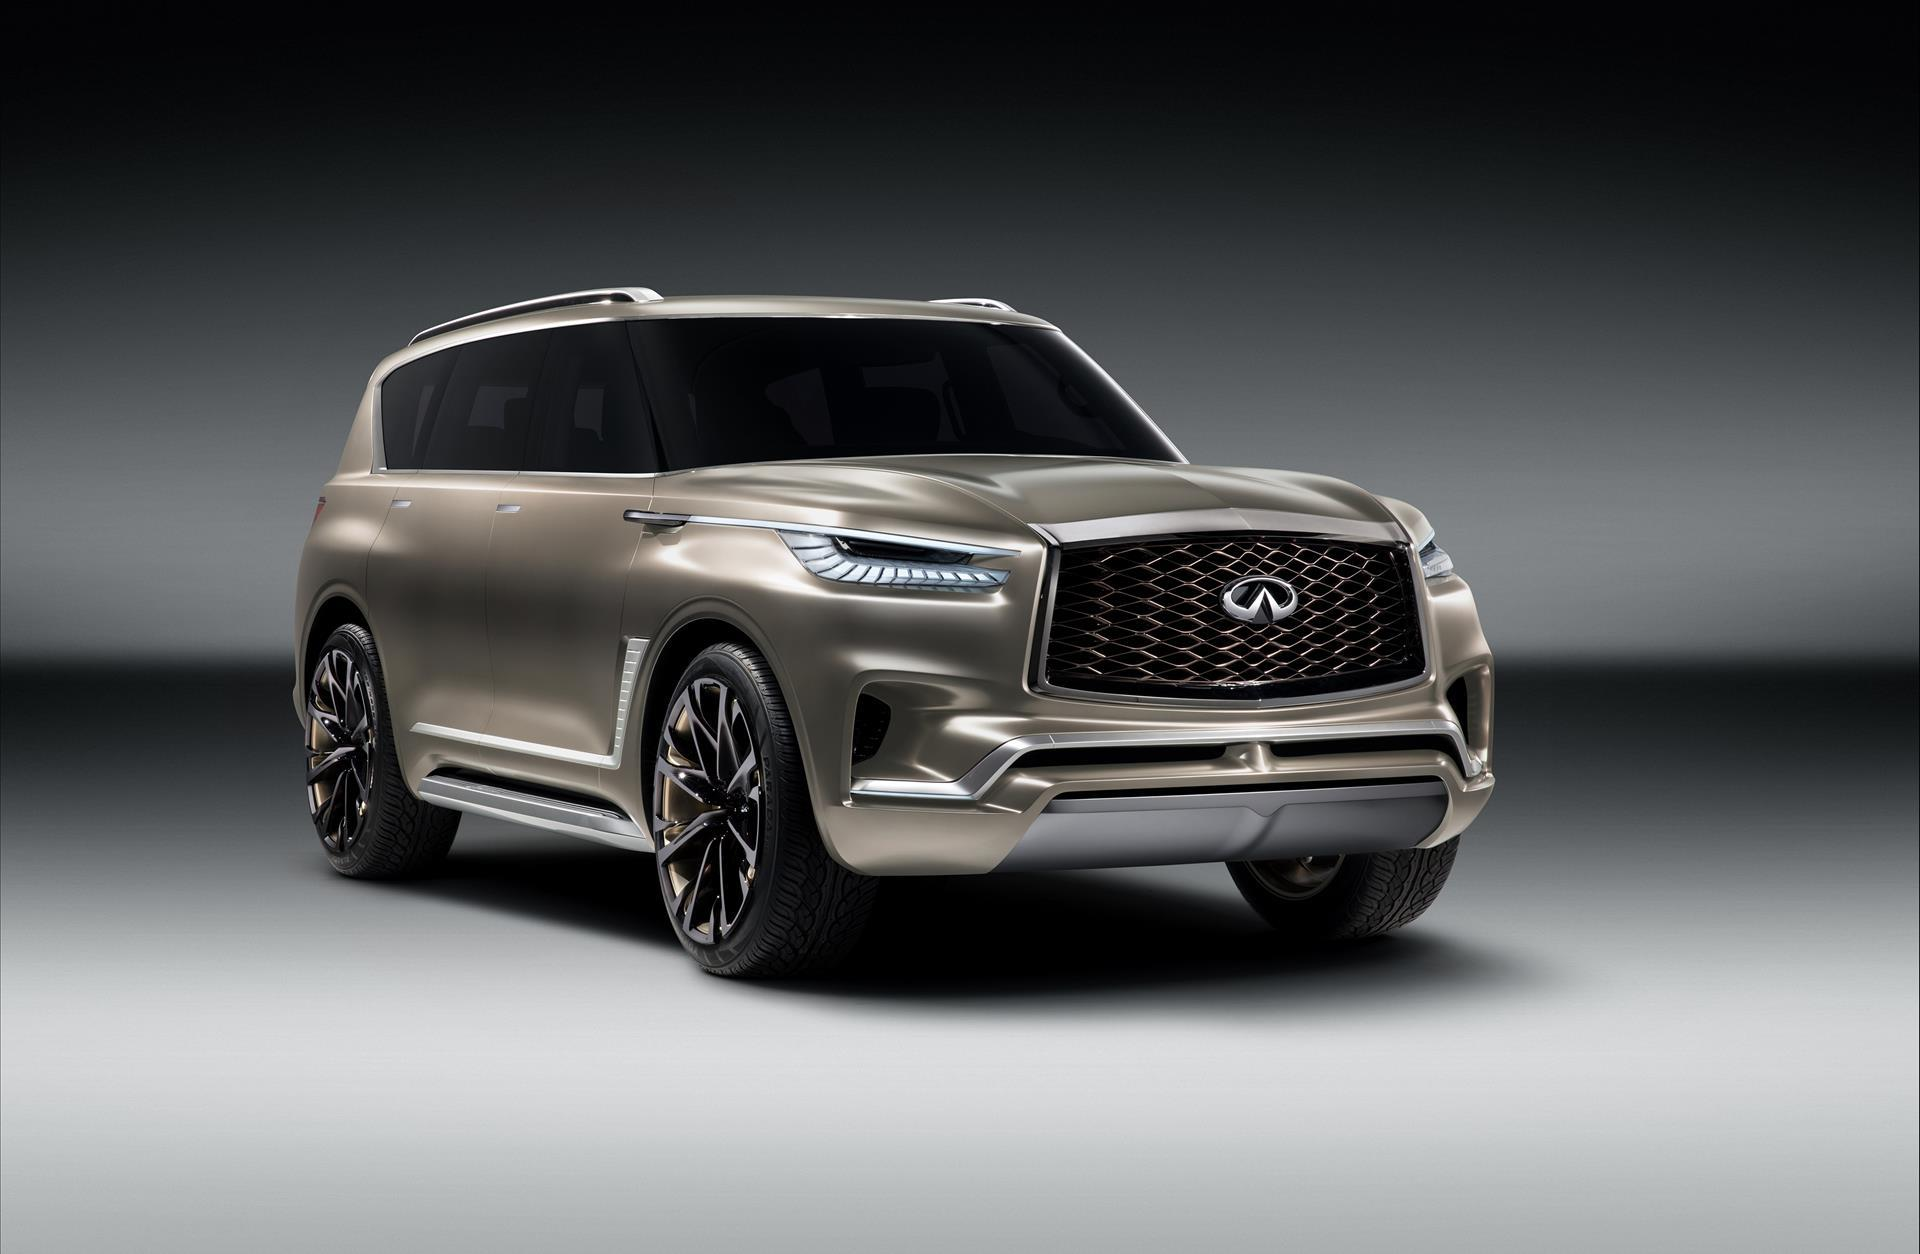 2017 infiniti qx80 monograph concept pictures news research pricing. Black Bedroom Furniture Sets. Home Design Ideas